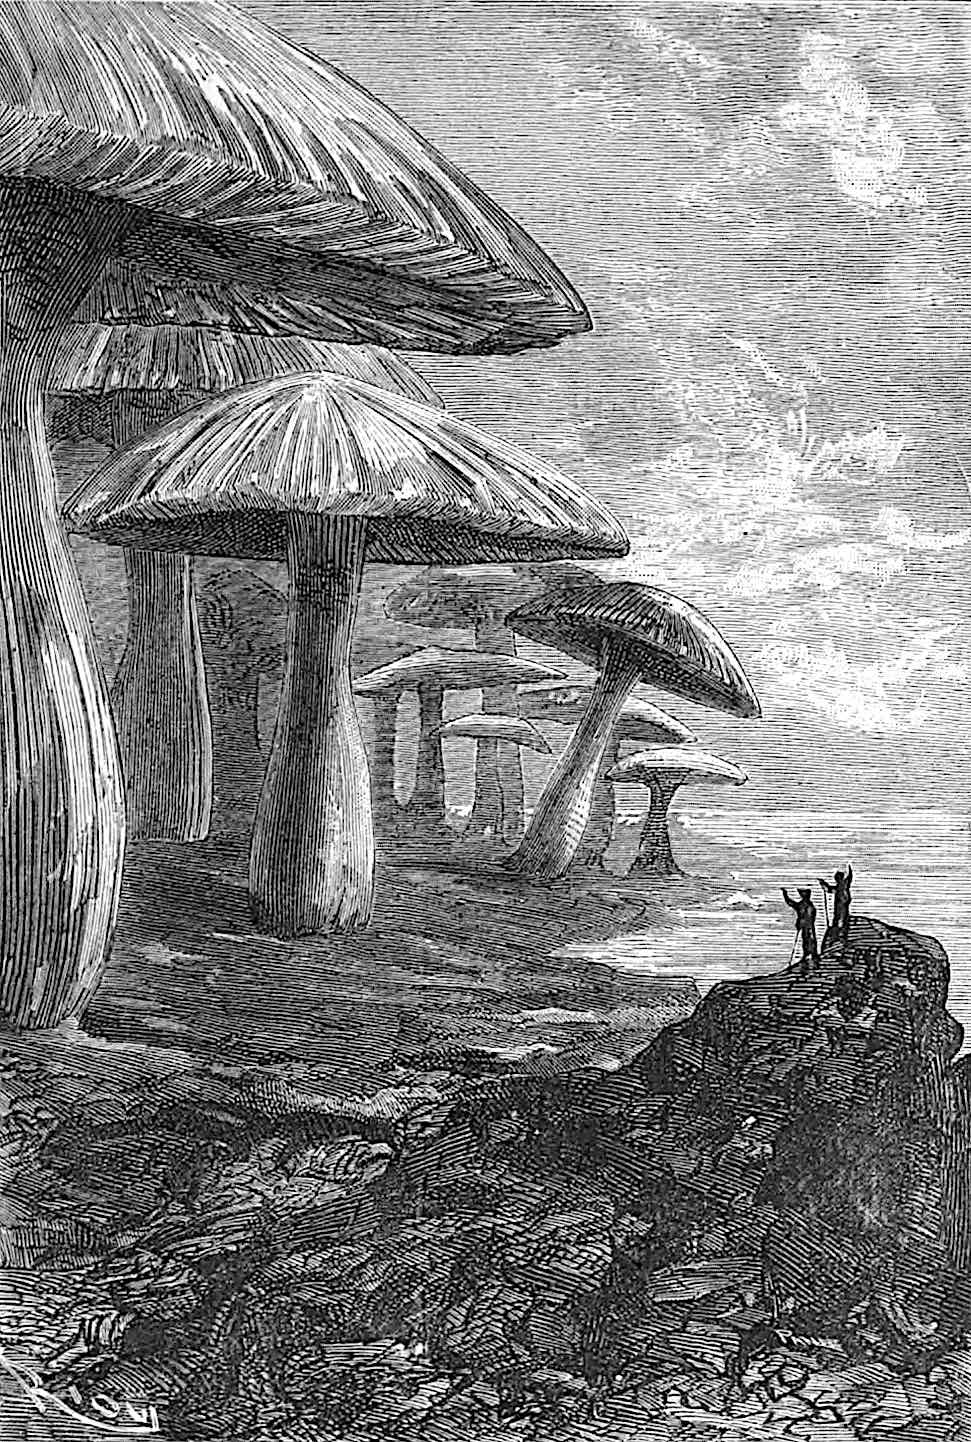 an Édouard Riou illustration for the 1800s Jules Verne book Journey to the Center of the Earth, with giant mushrooms